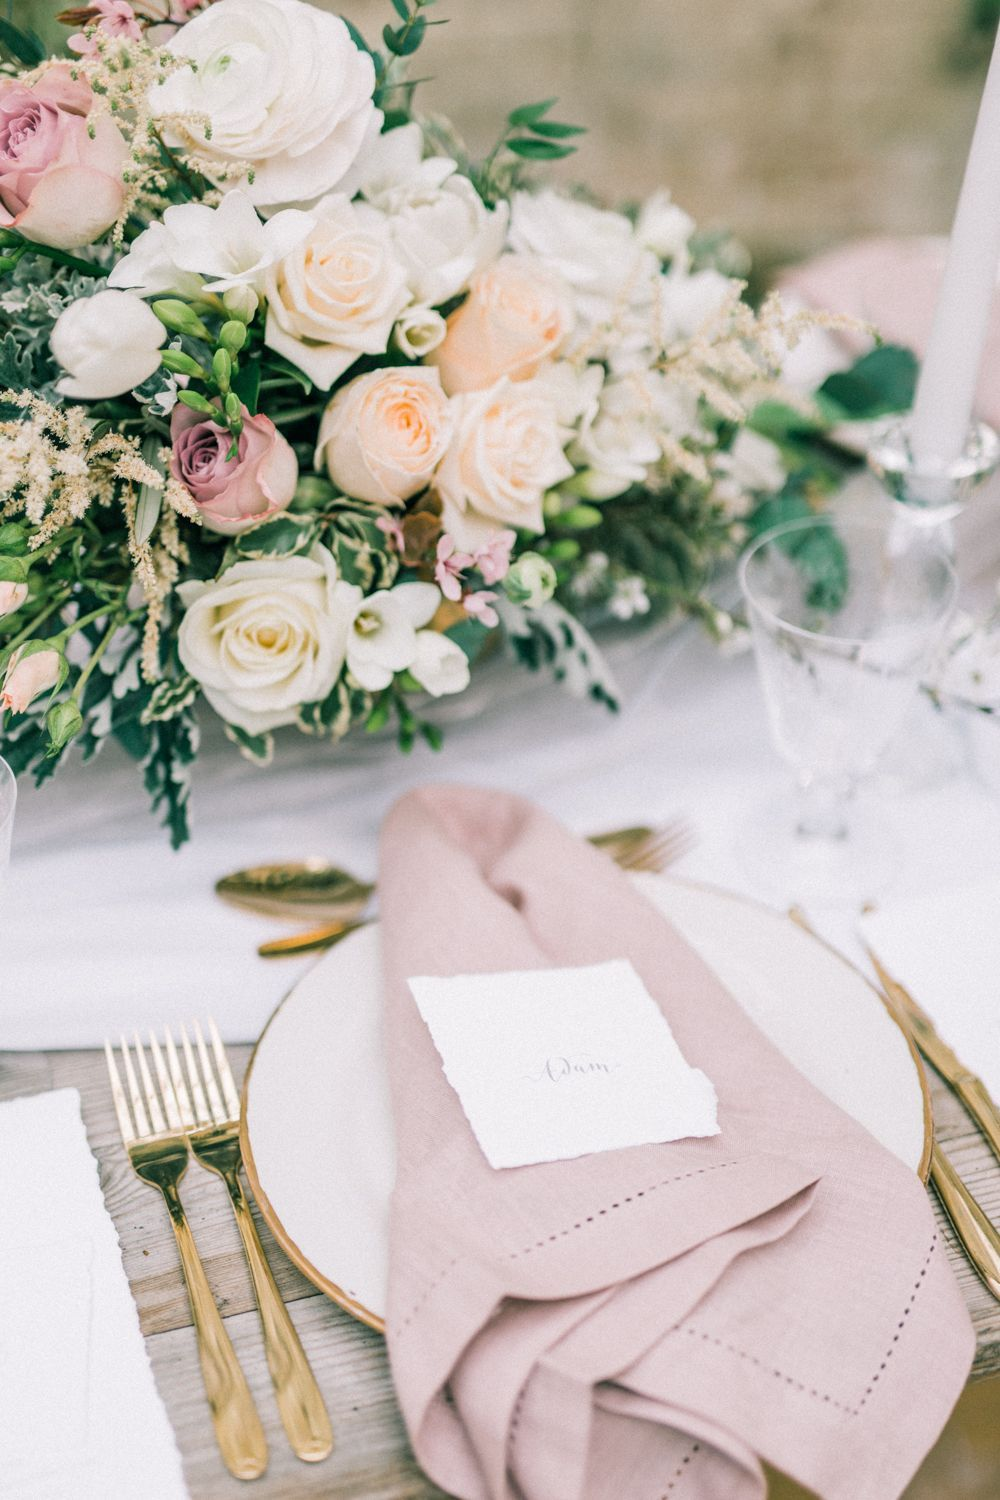 Romantic Table Scape With Roses And Pink Linens | Arabella Smith Fine Art Weddings #napkin #placesetting #wedding #menu